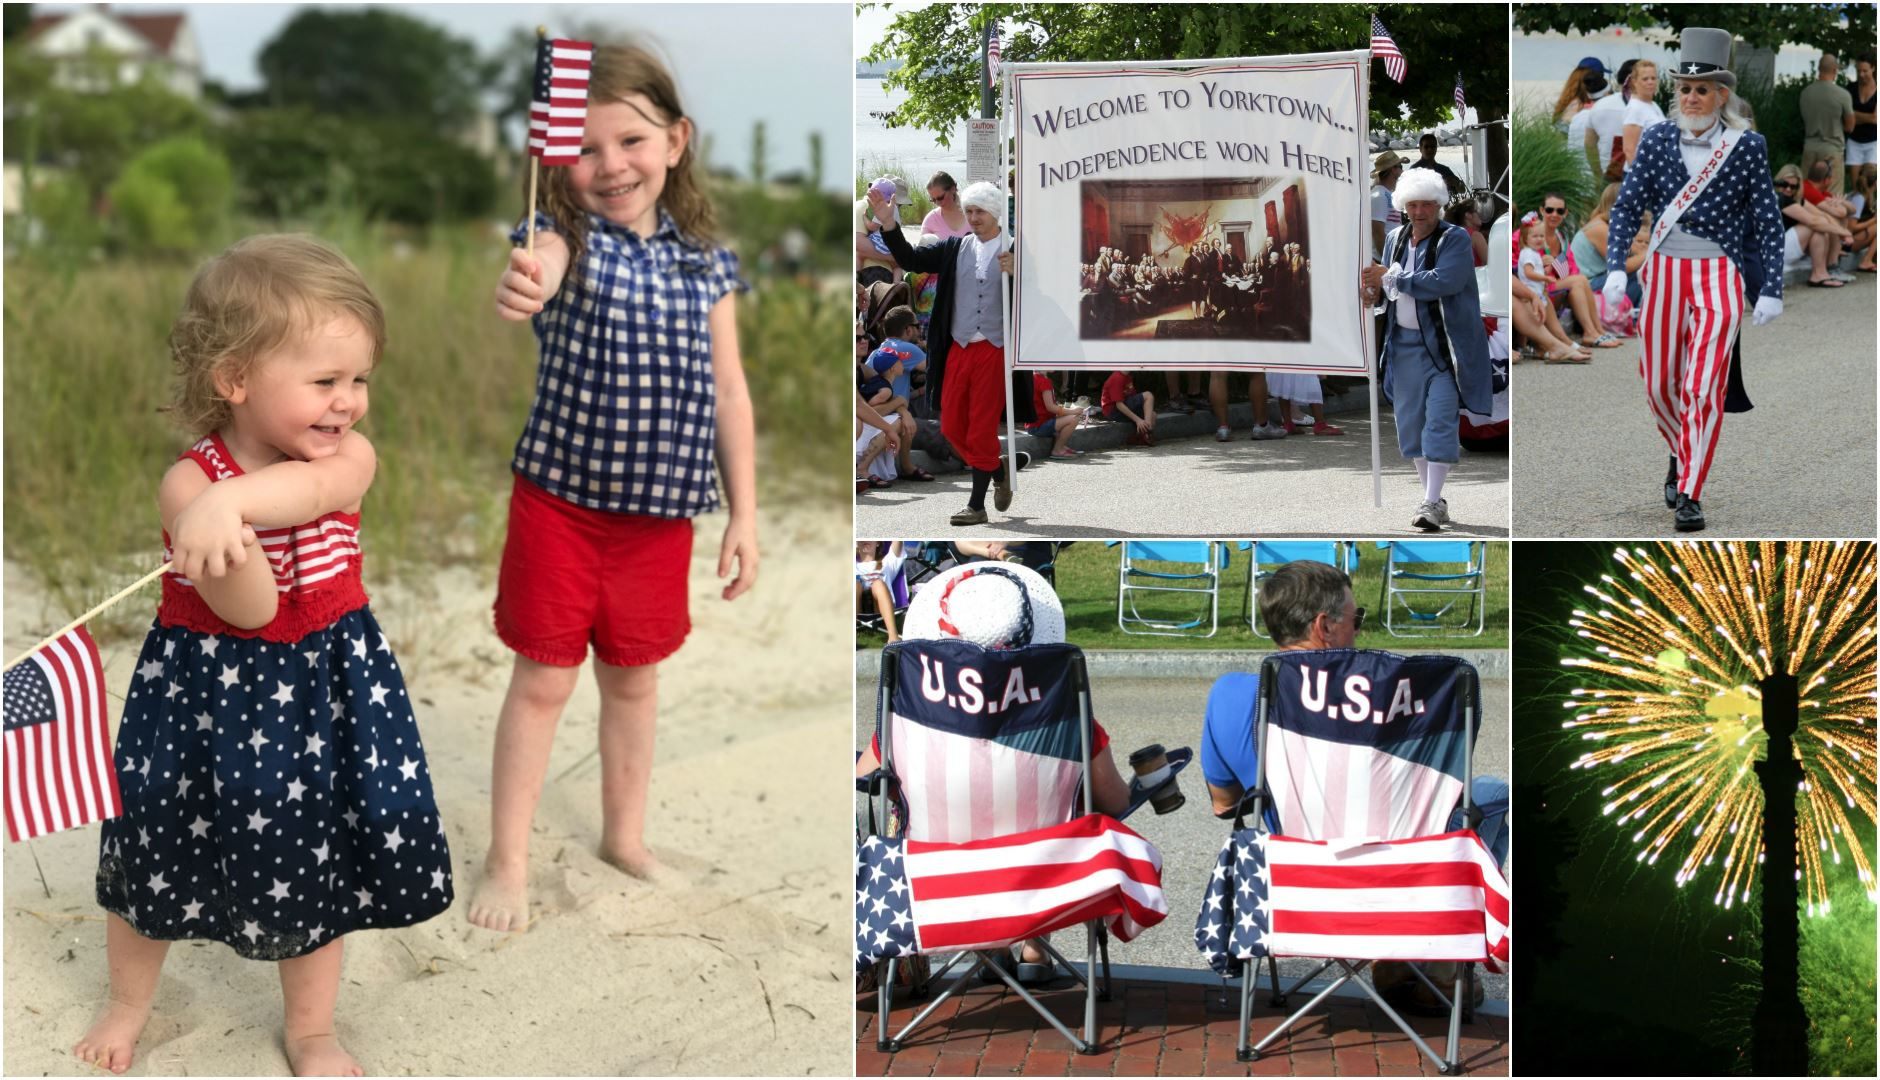 Parade, Fireworks, and Patriotic Collage of Images